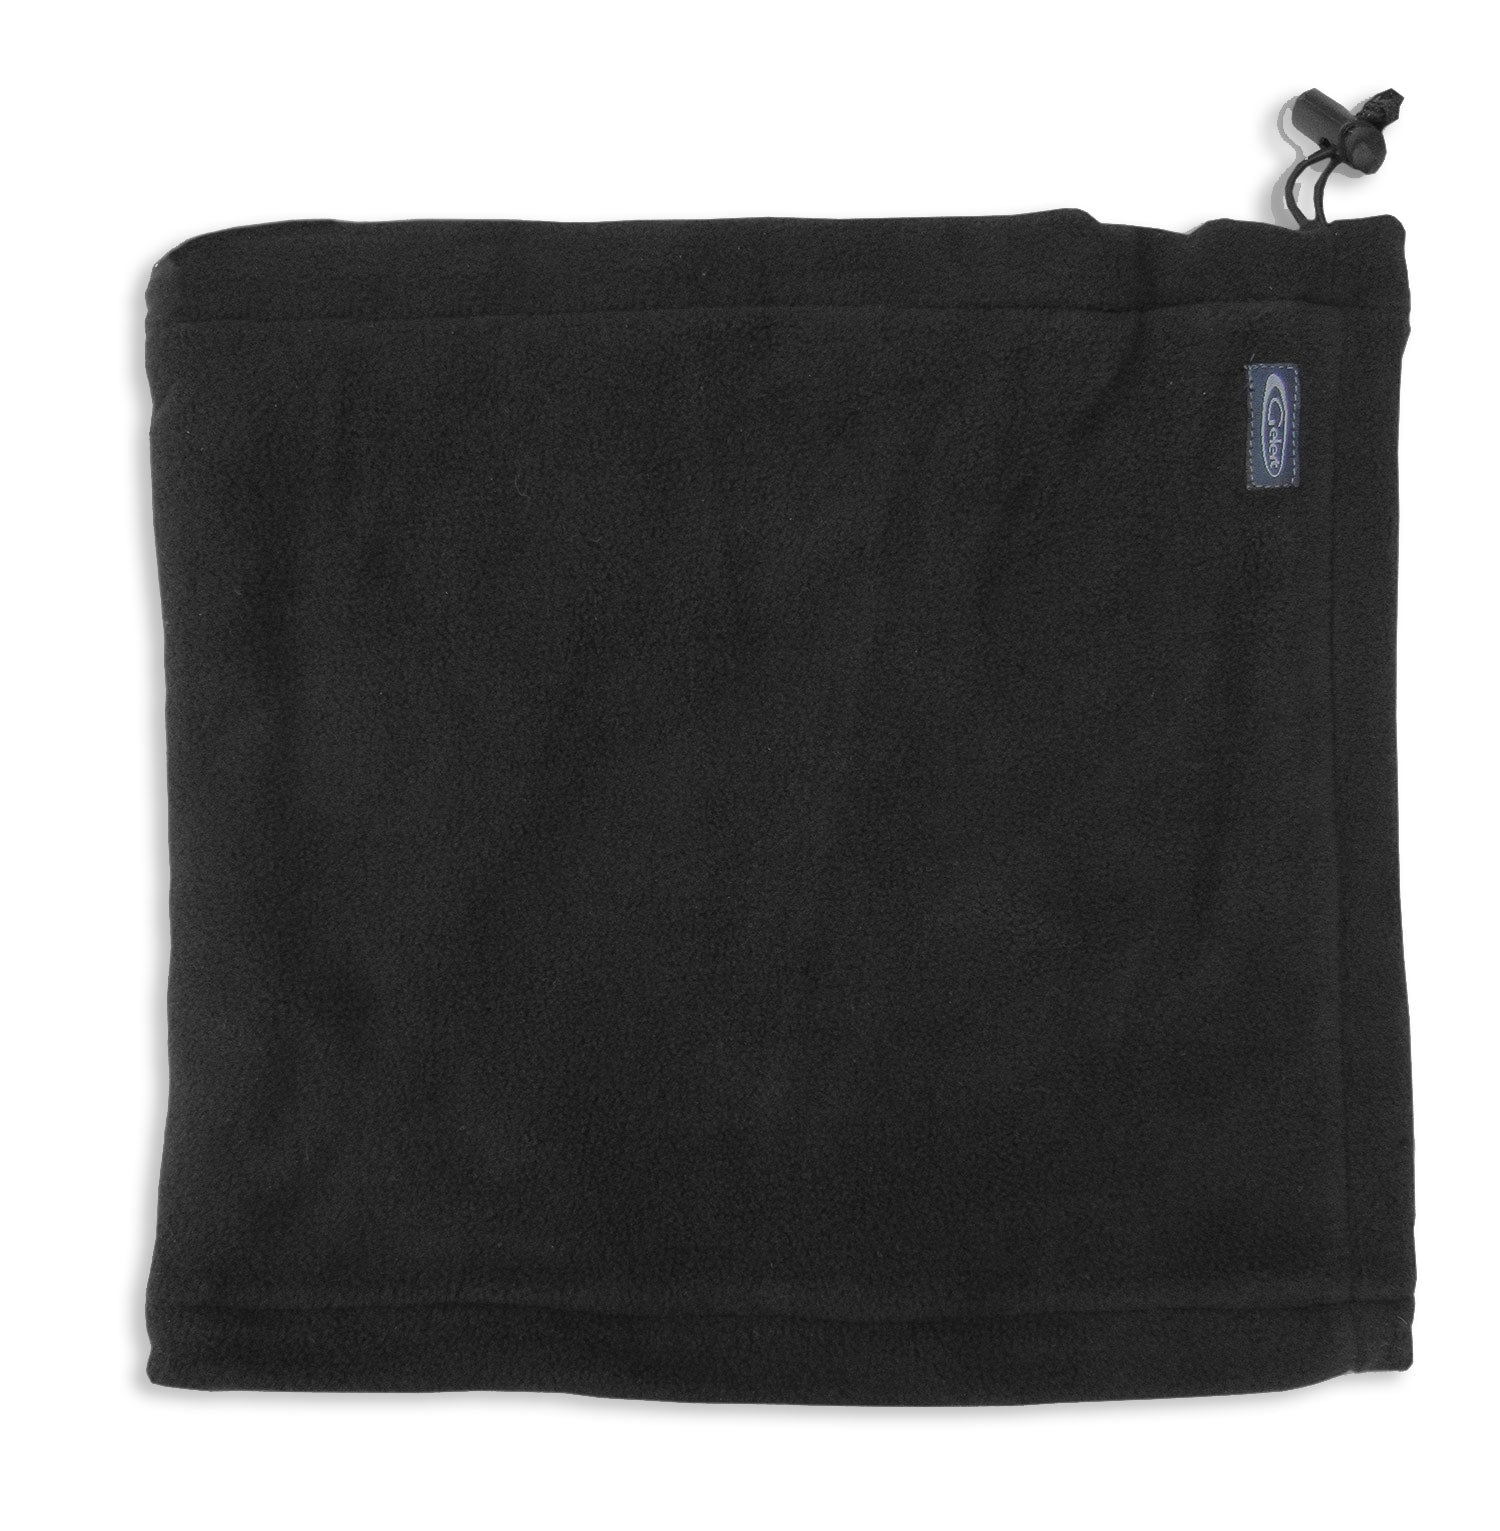 Black Gelert Fleece Neck Warmer